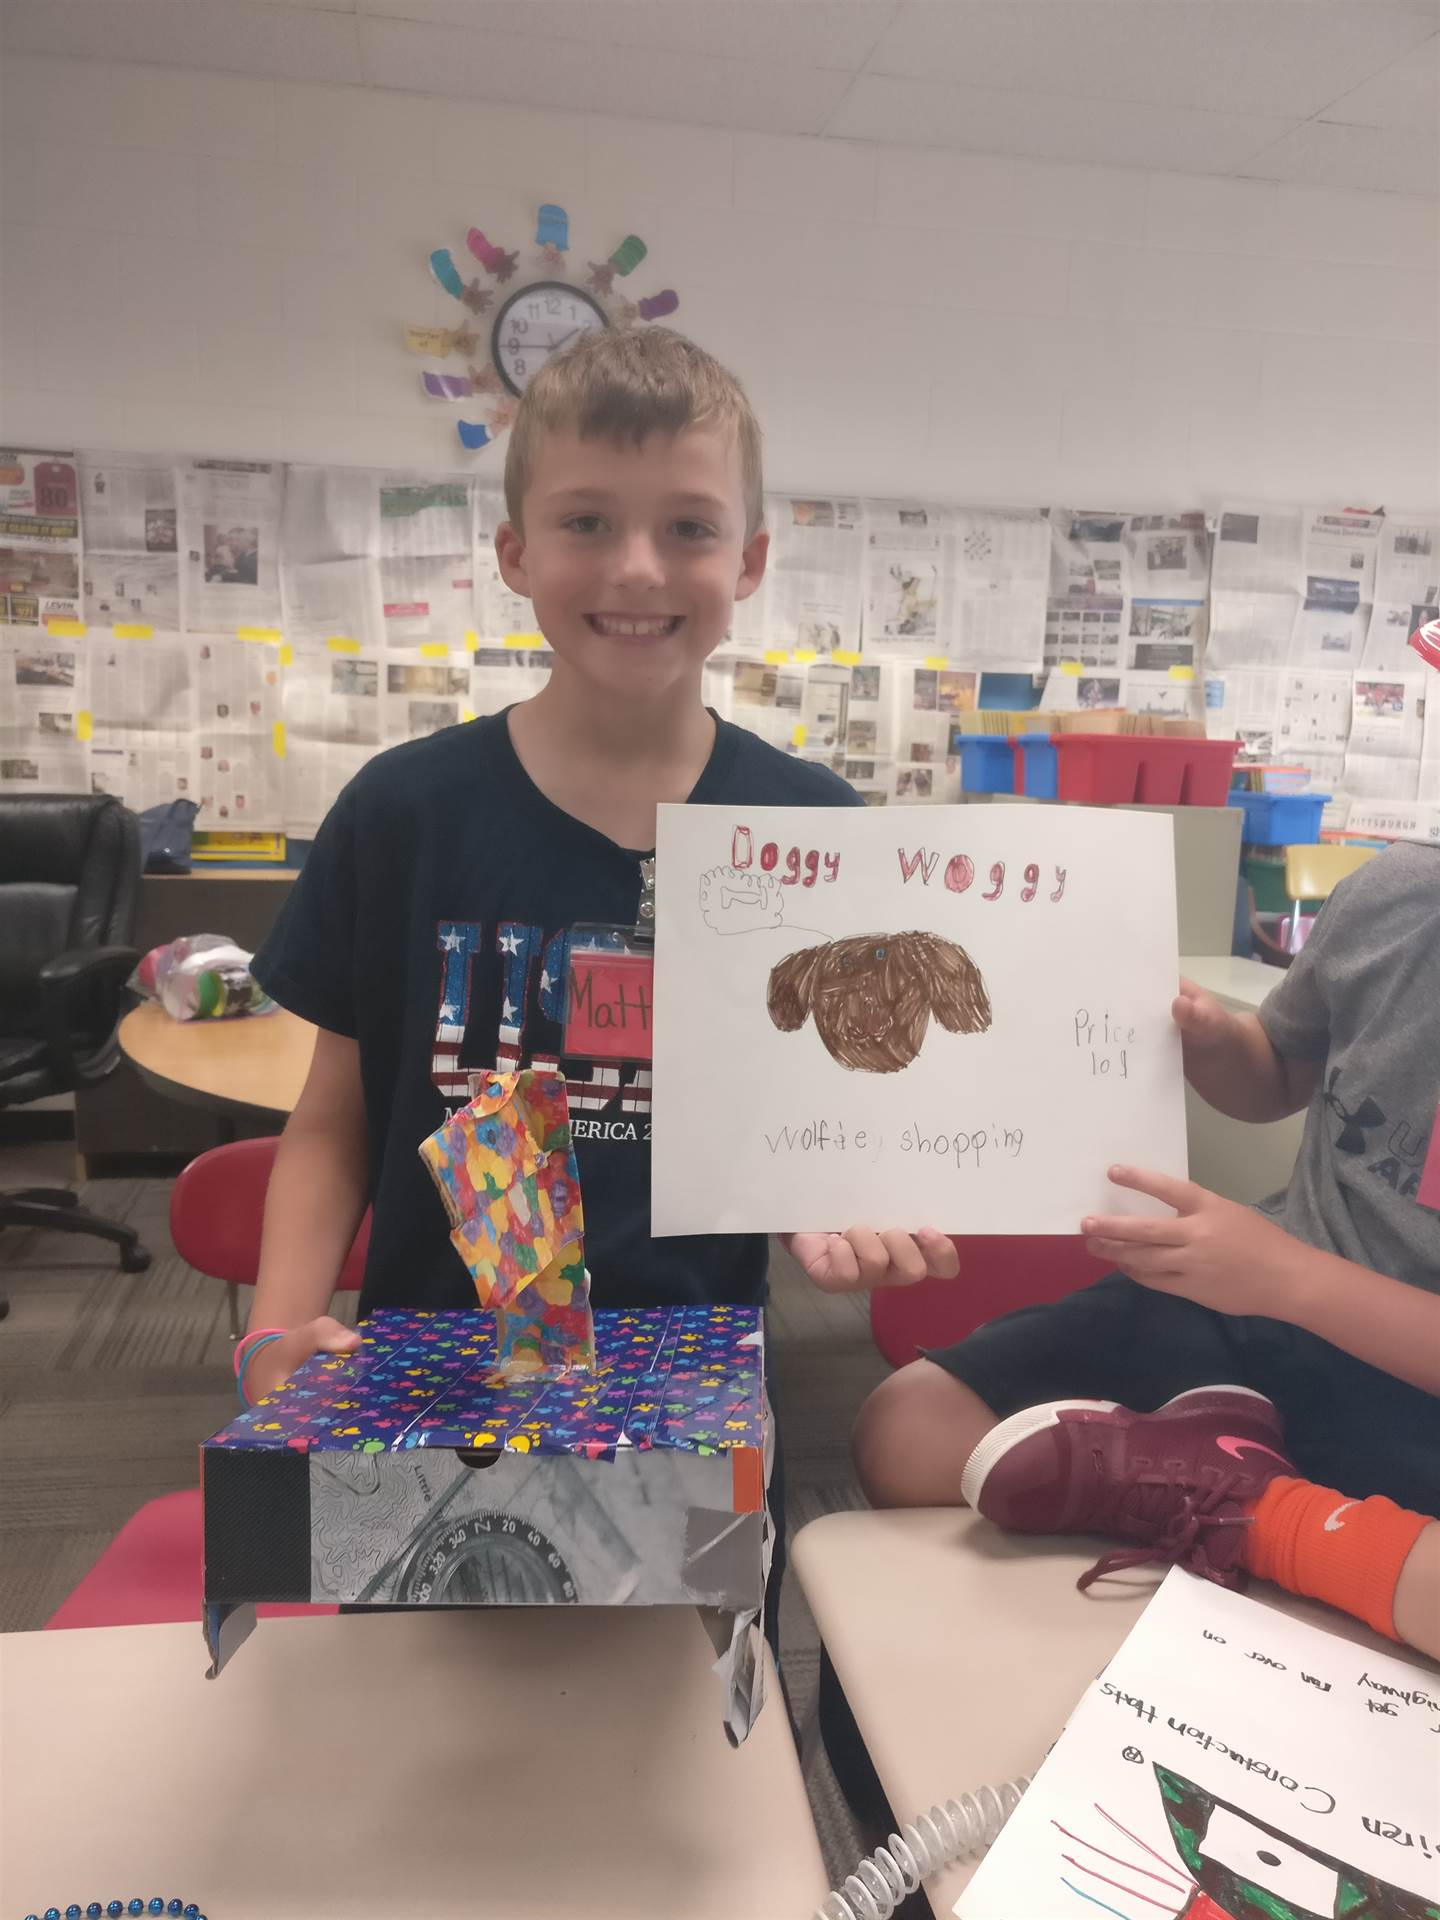 This student created the Doggy Woggy product to market and sell in the Duct Tape Millionaire module.